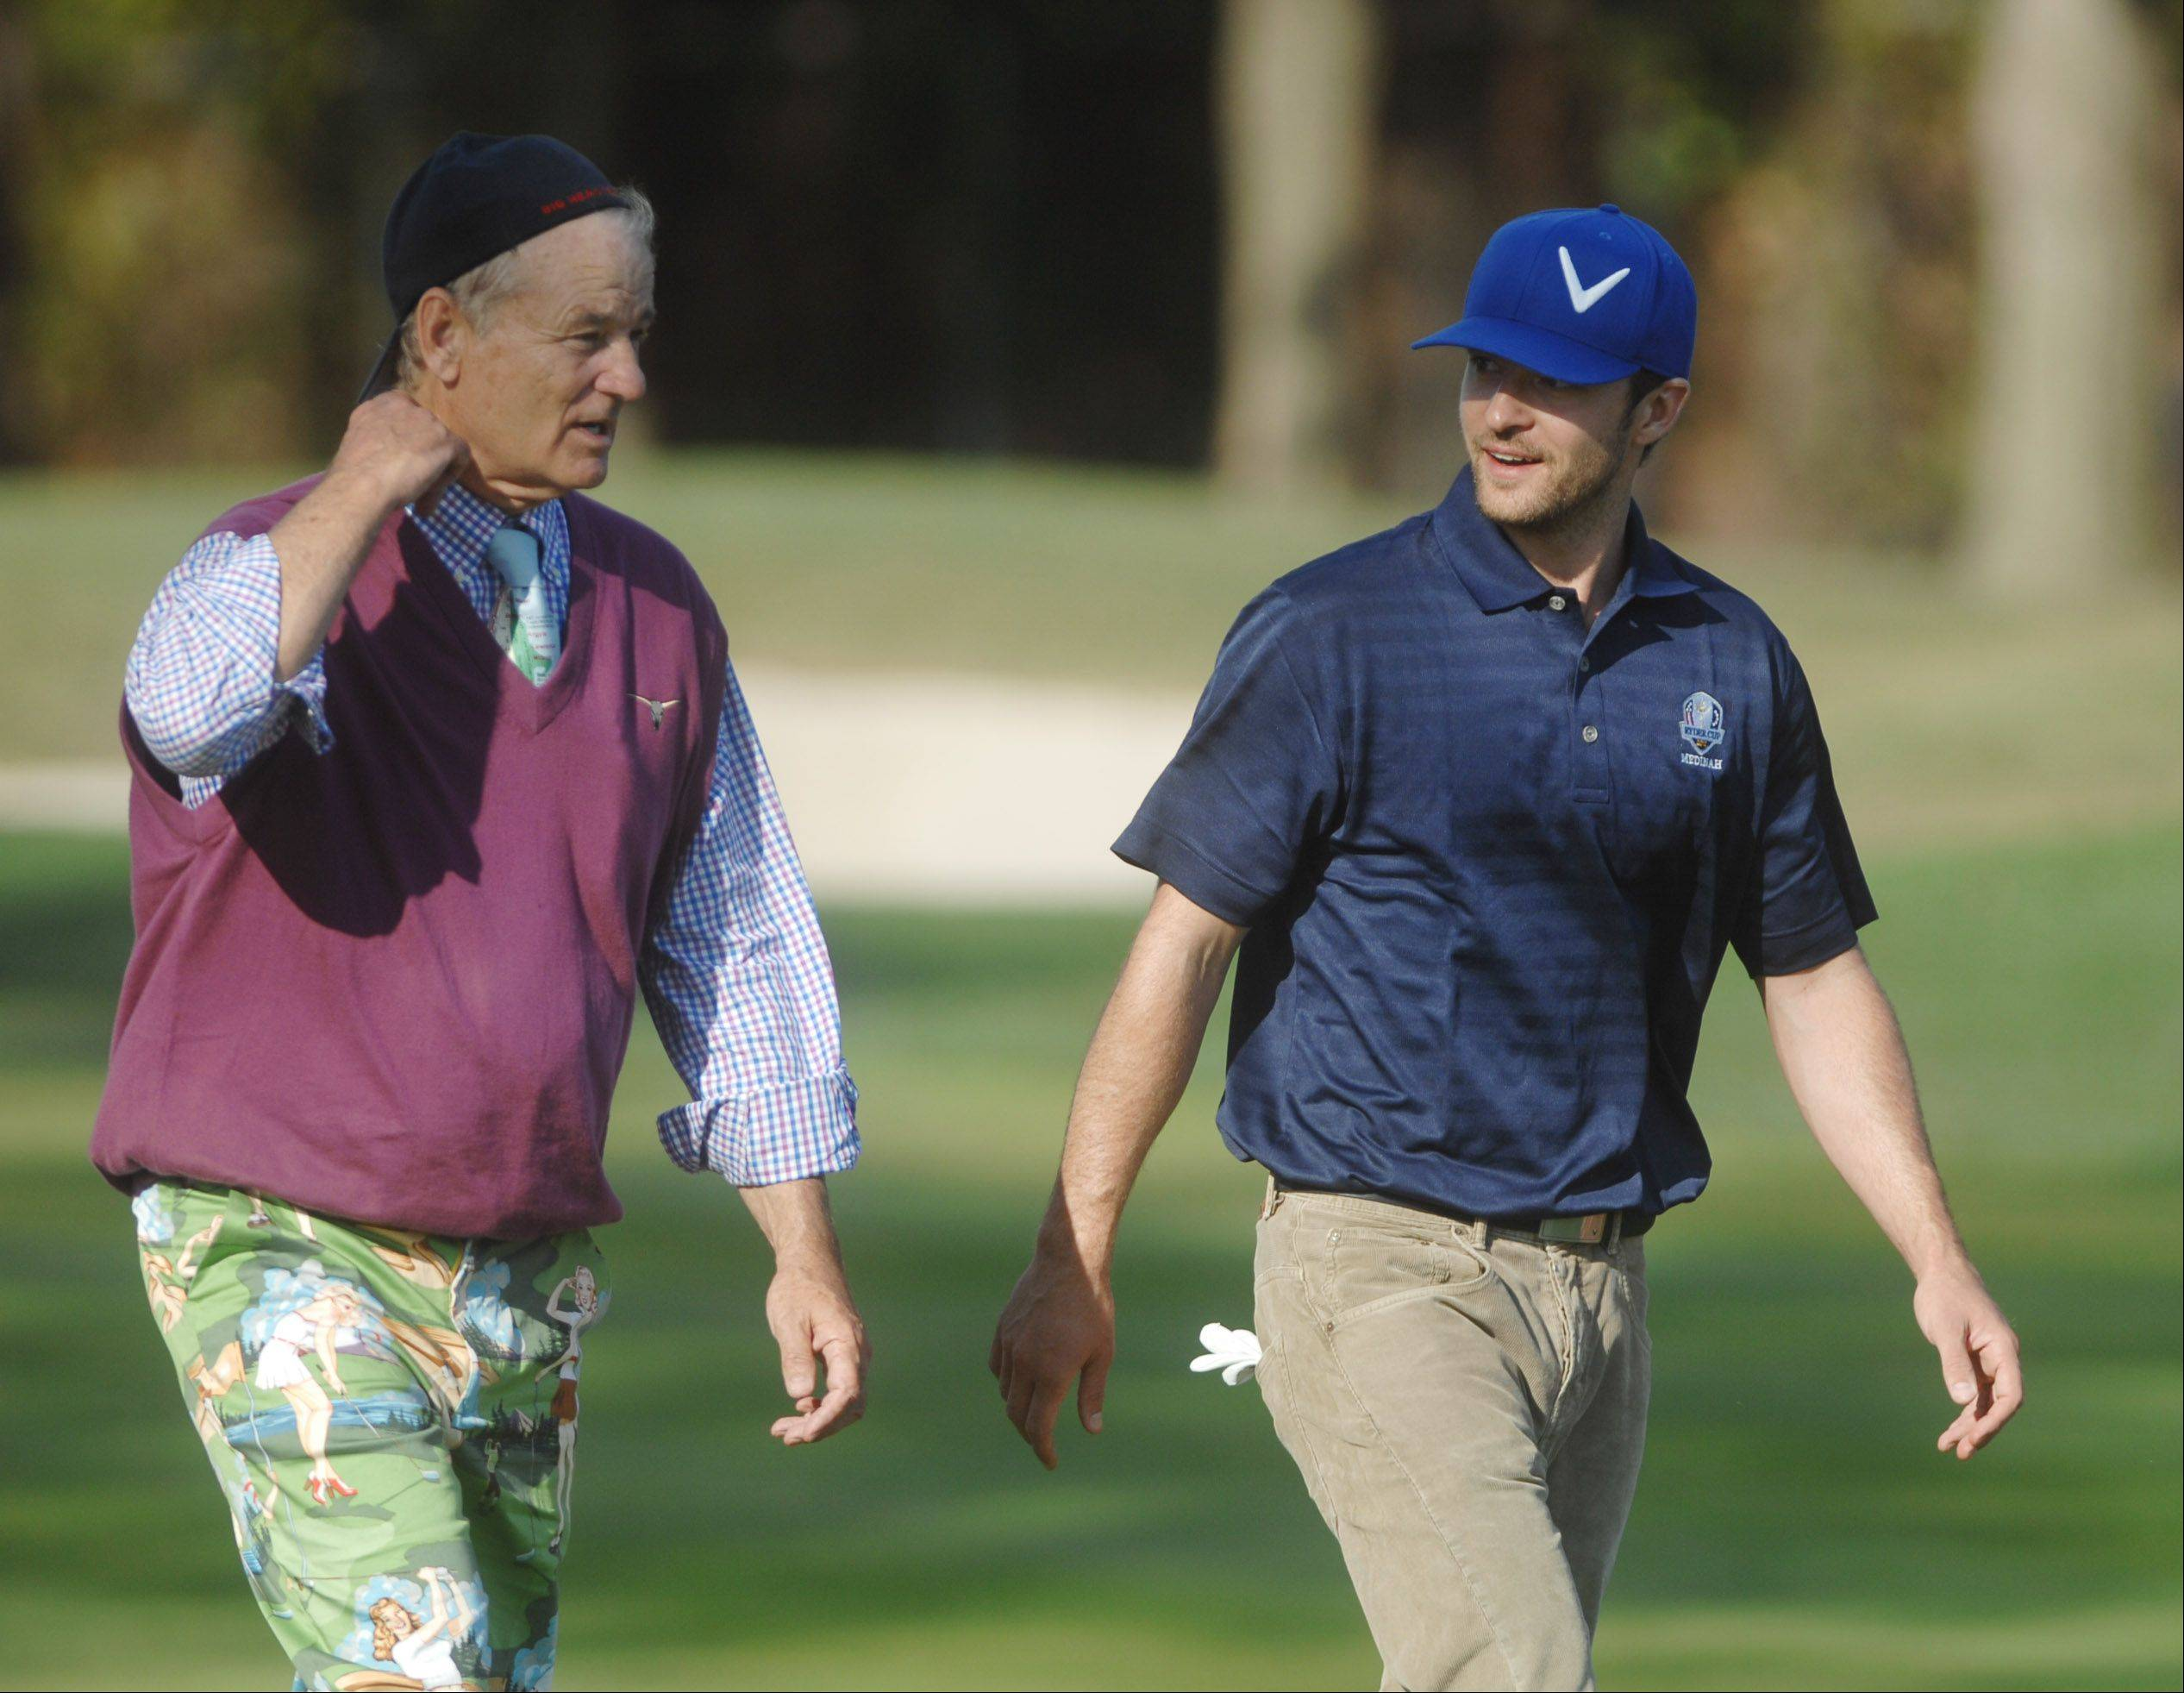 Bill Murray and Justin Timberlake chat it up between holes at the Celebrity Scramble Exhibition Tuesday at the 39th Ryder Cup in Medinah.